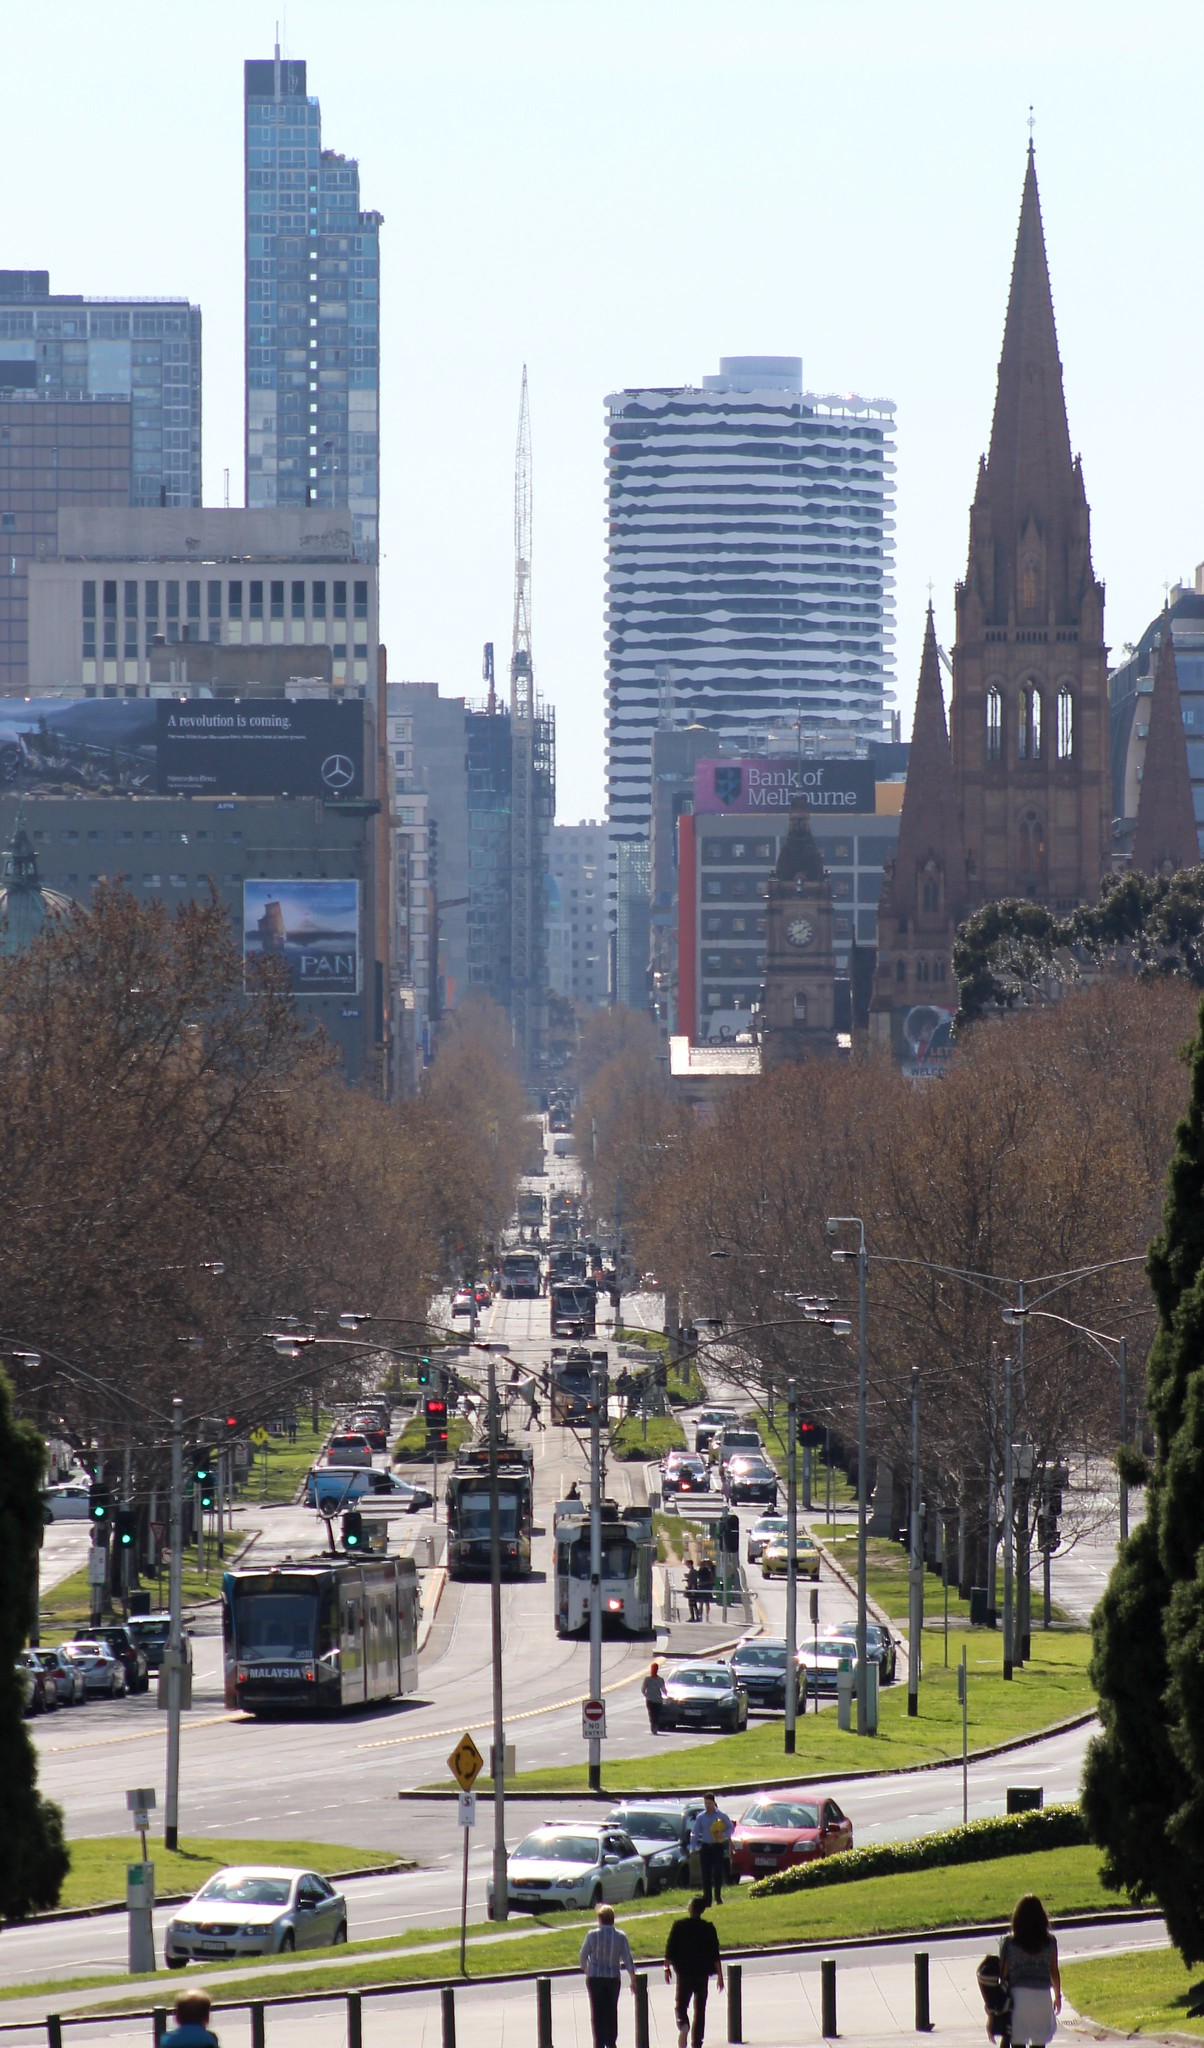 Swanston Street/St Kilda Road, looking north from the Shrine, Melbourne